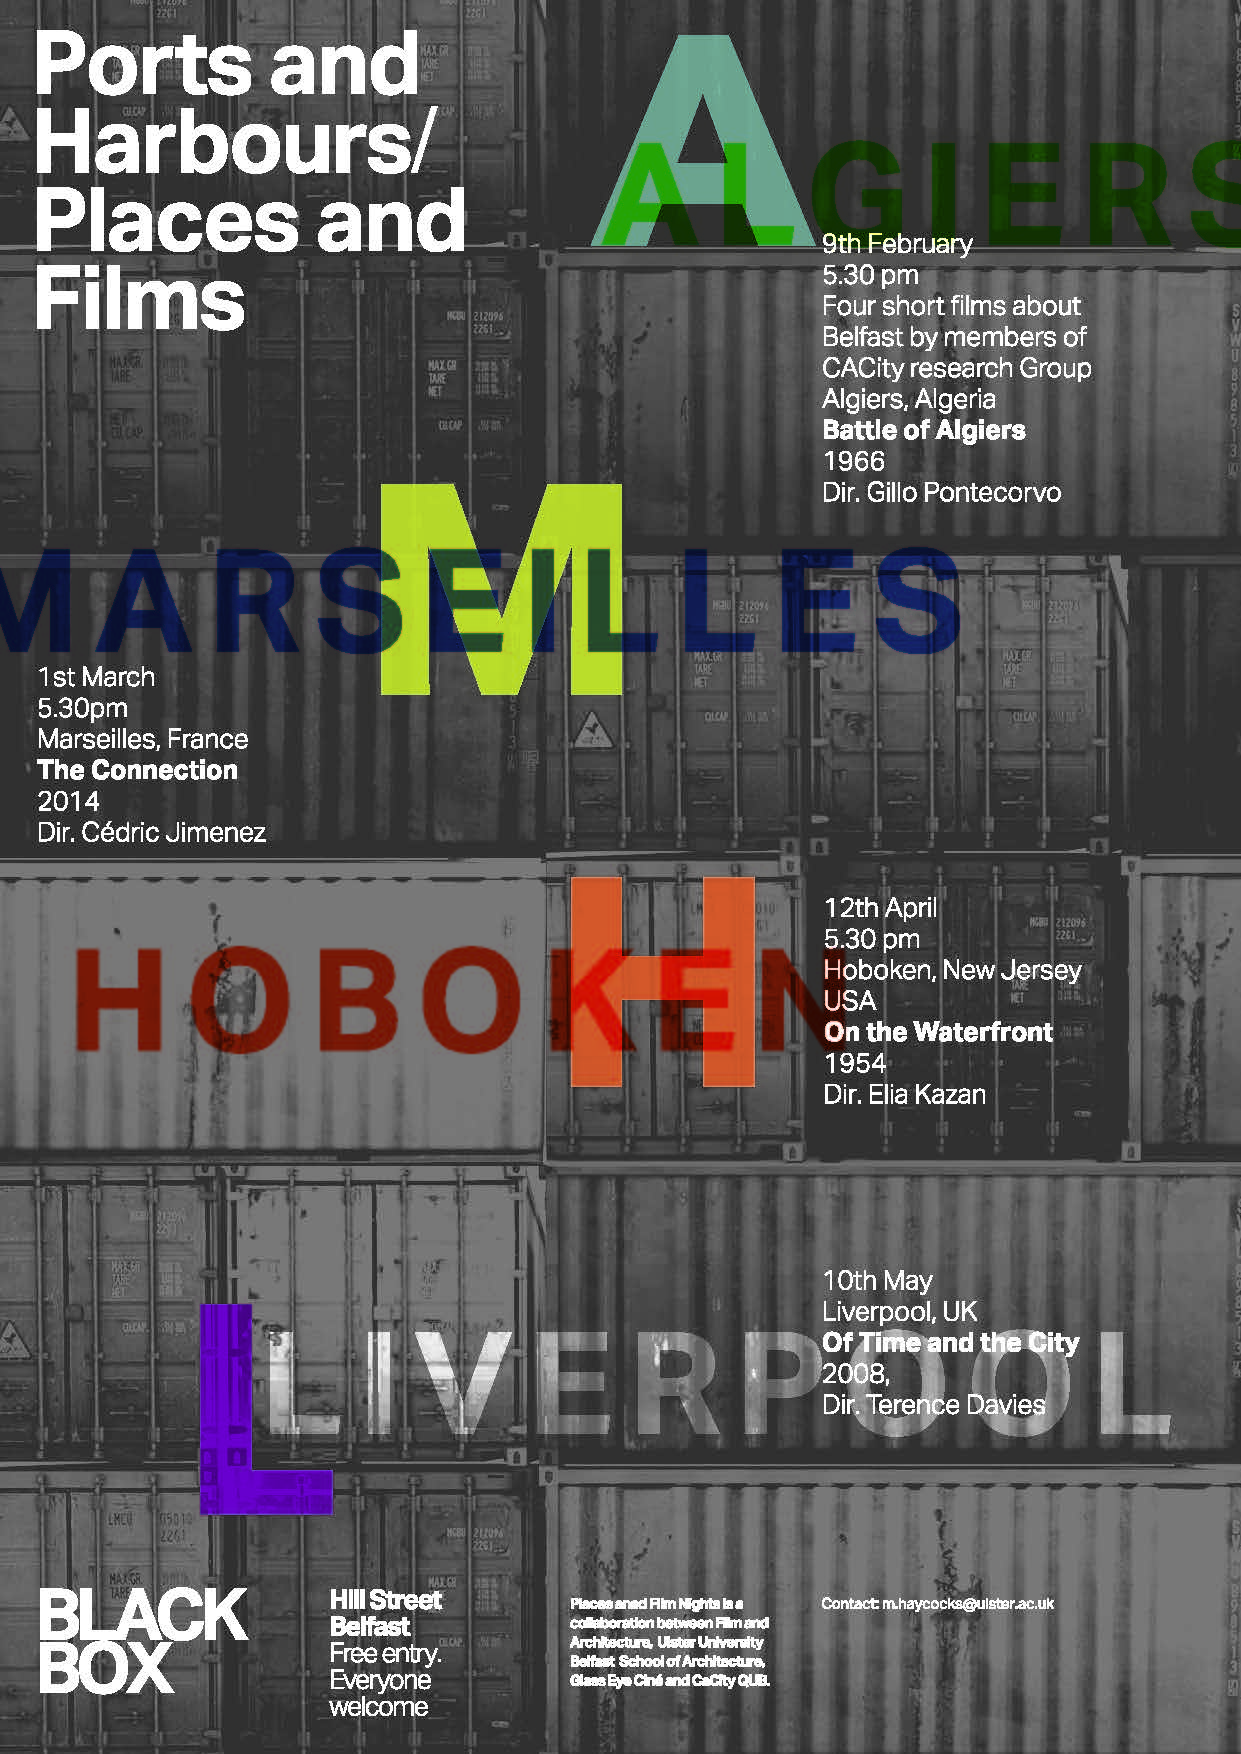 Ports and Harbours/ Places and Films @ The Green Room